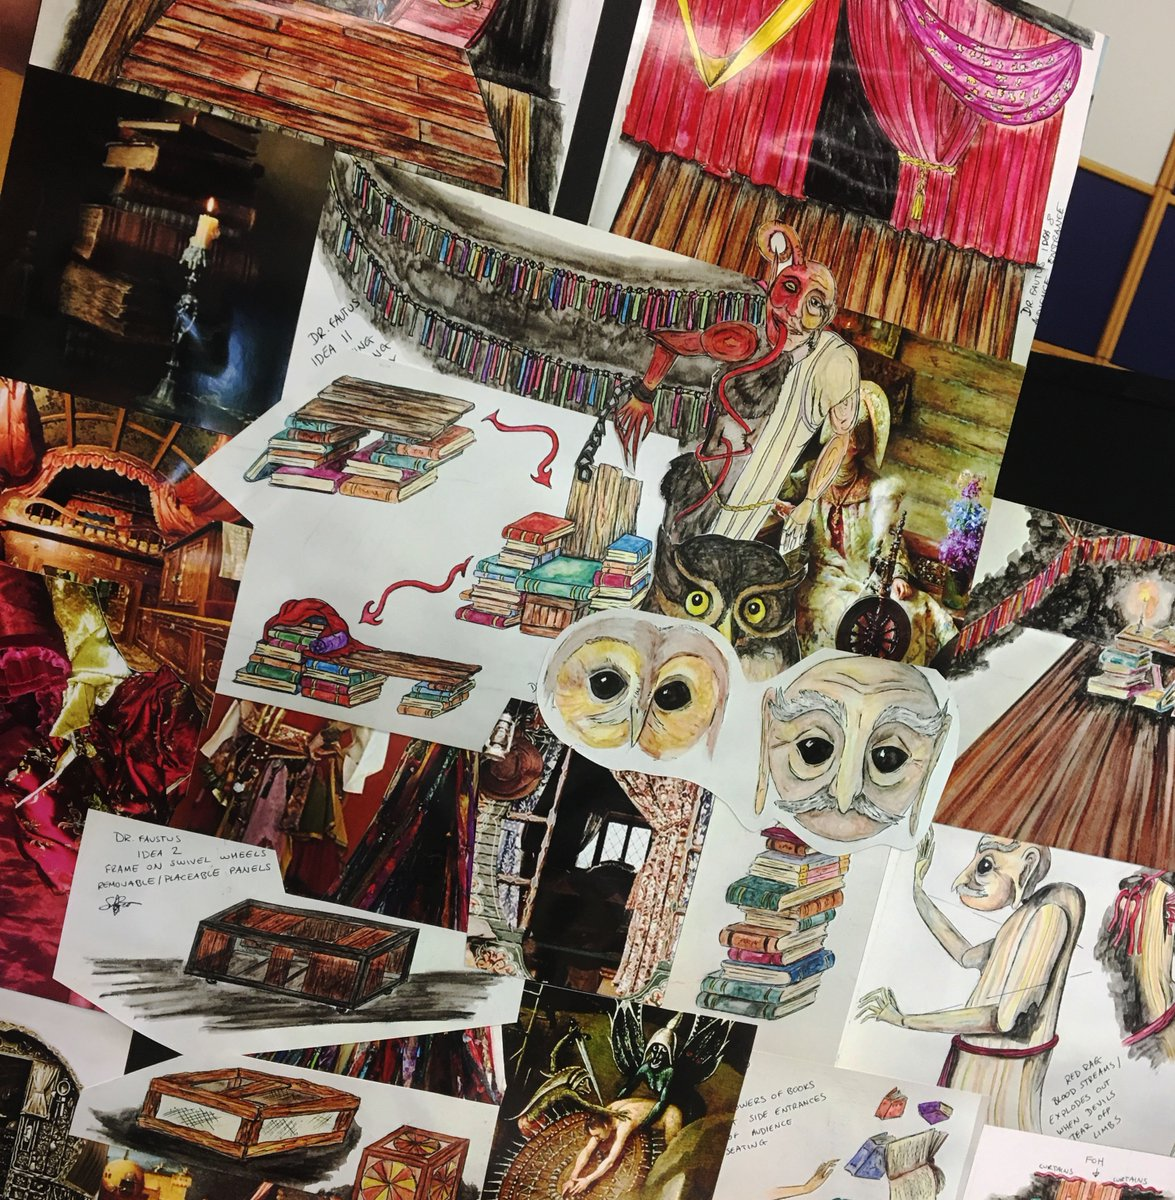 Rule 1: You&#39;ve got a have a good #moodboard to get the creative juices flowing! Are you ready for #DrFaustus?!  https:// goo.gl/UFnSab  &nbsp;  <br>http://pic.twitter.com/EI2nGVgrCI